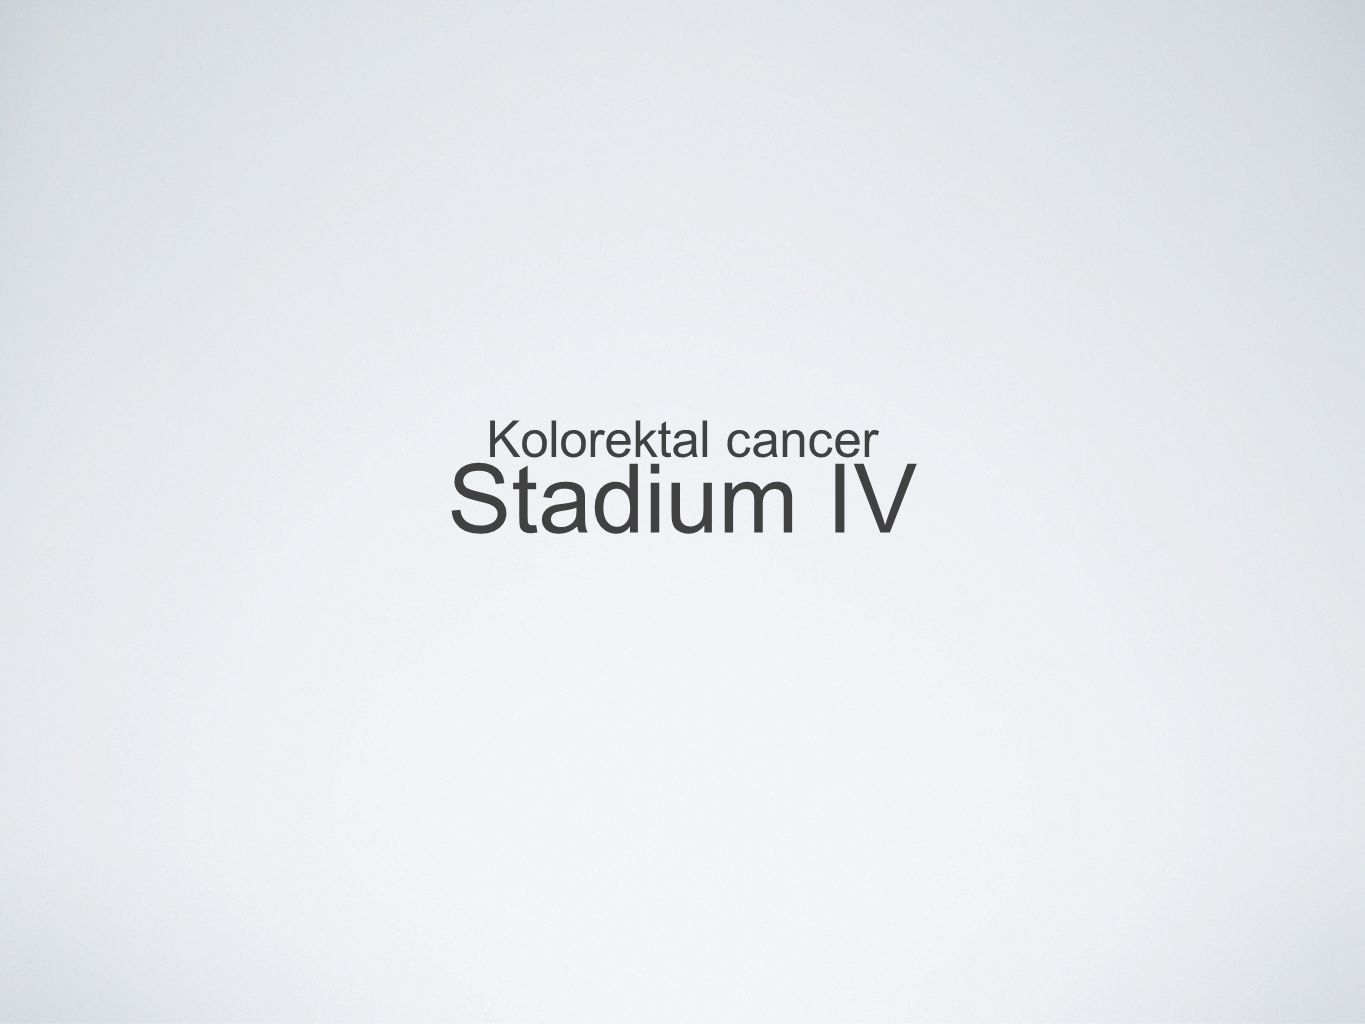 Stadium IV Kolorektal cancer